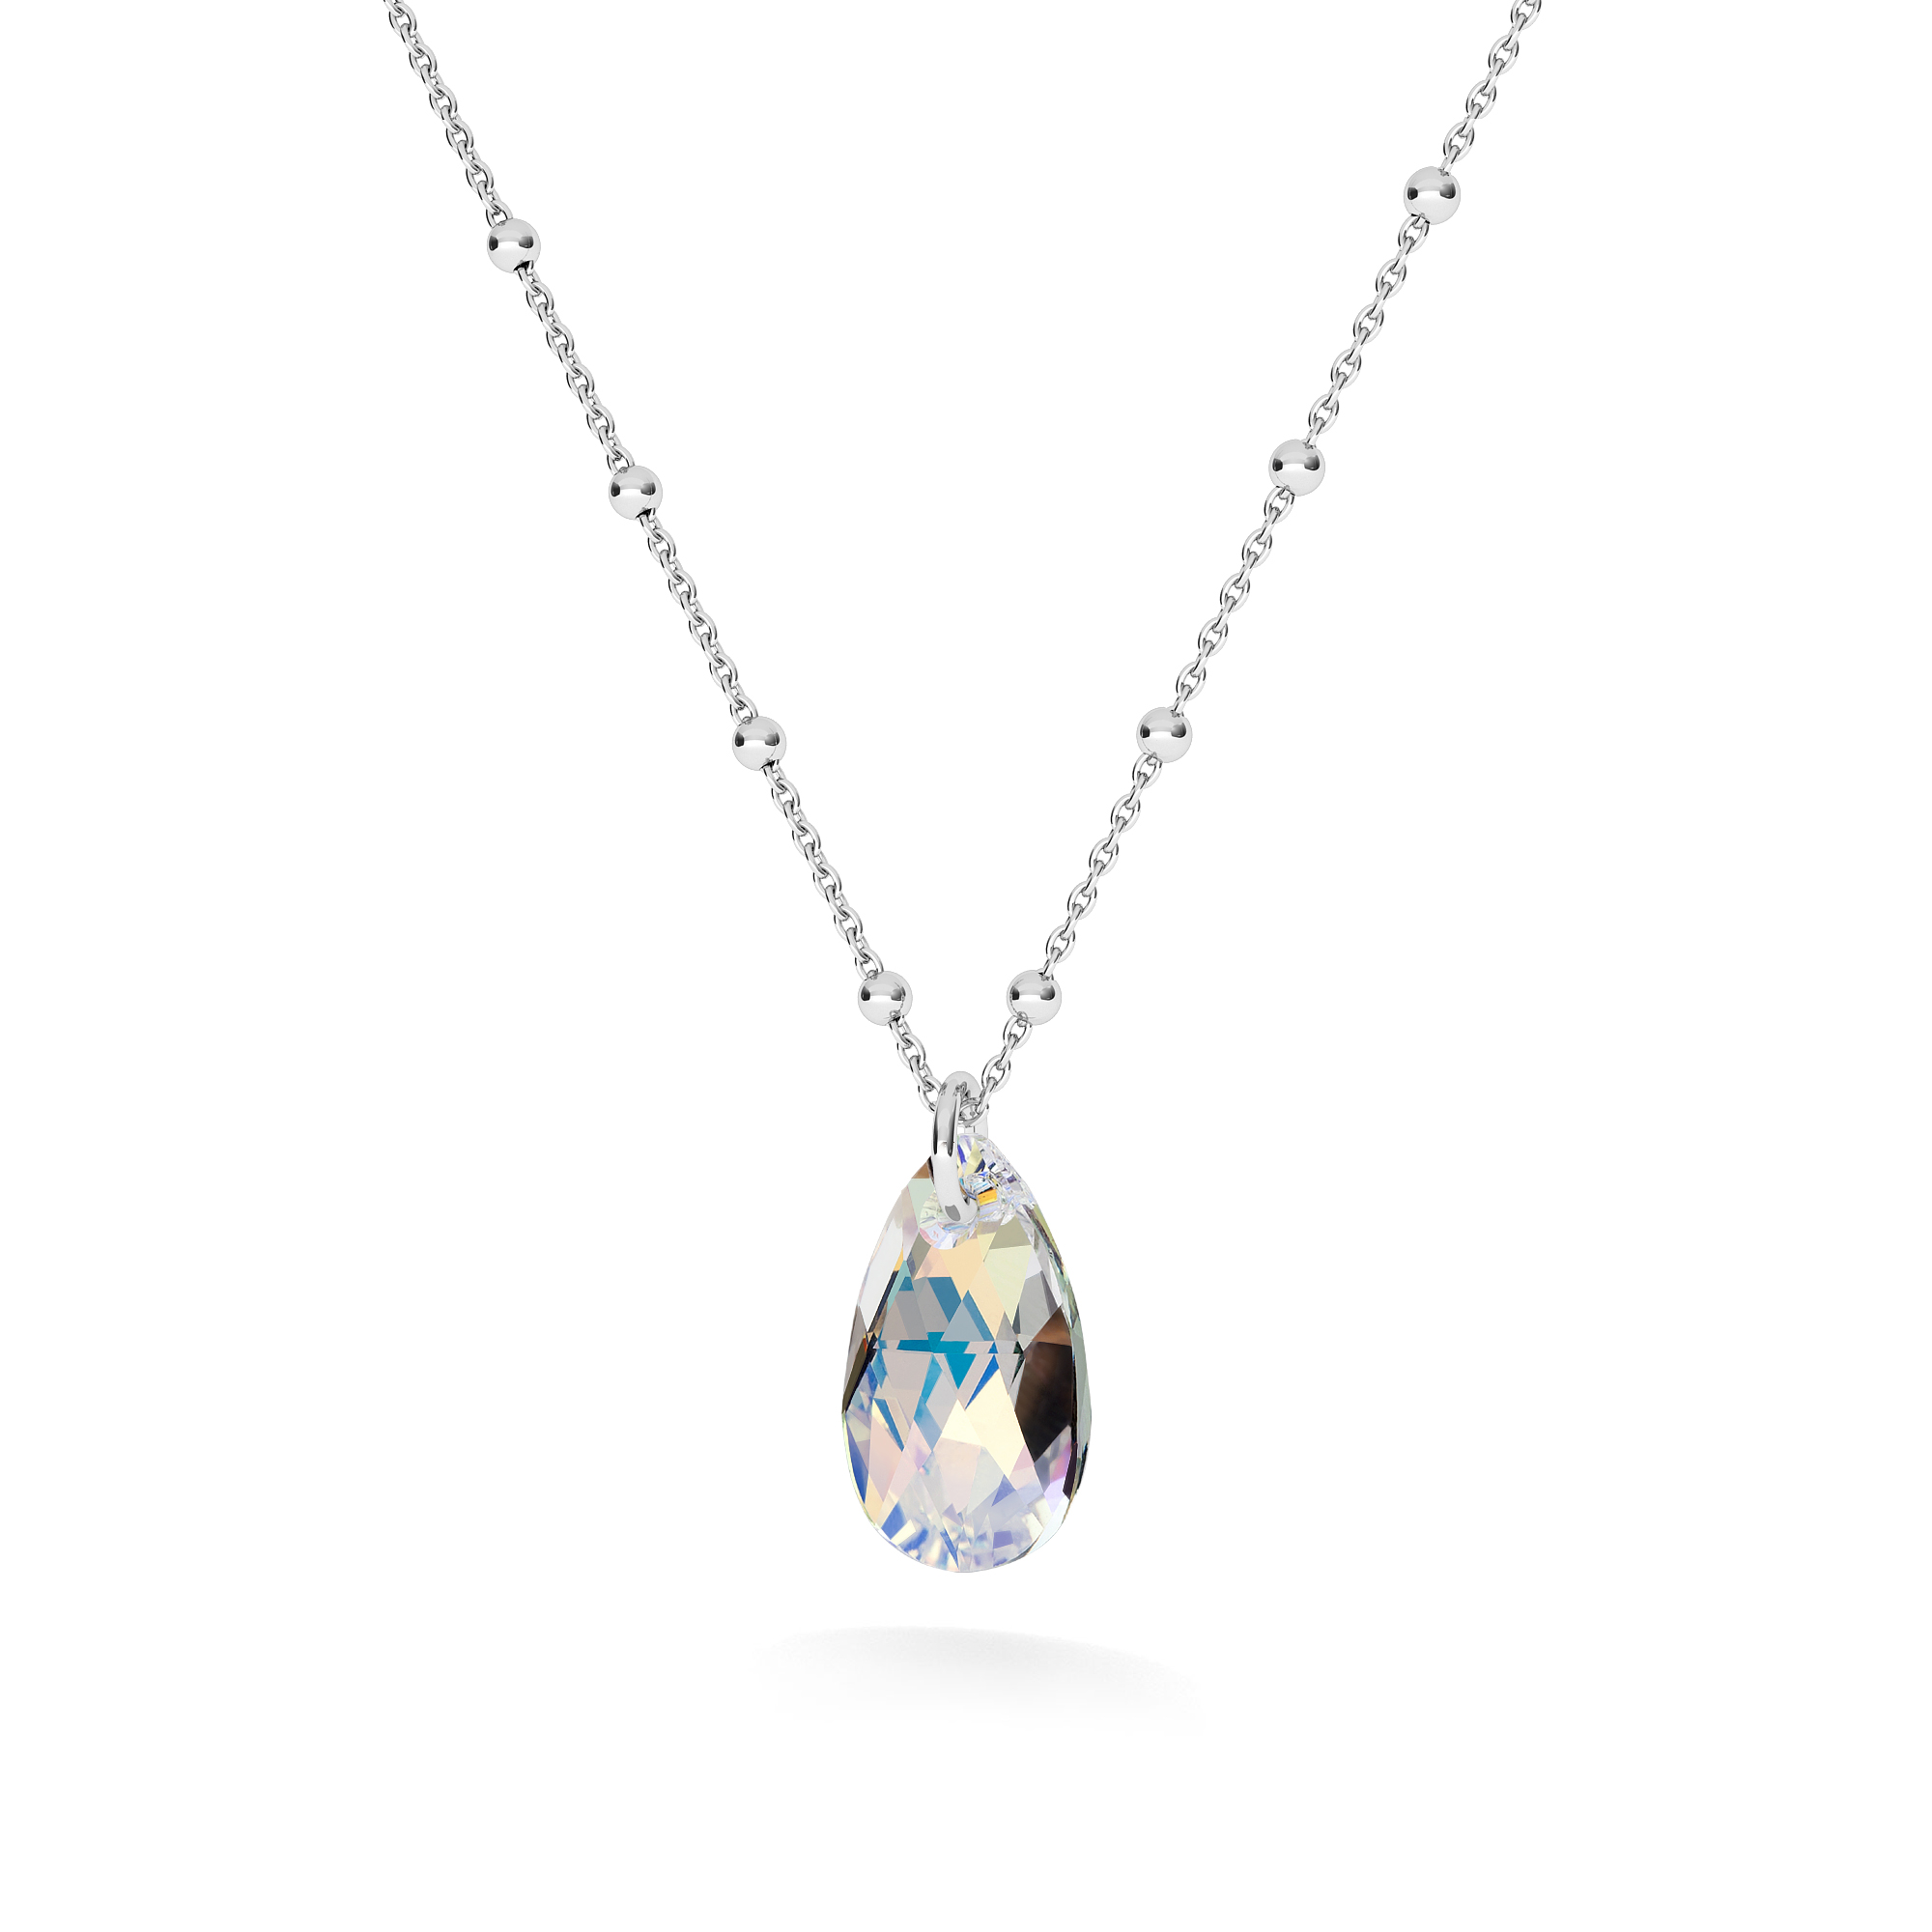 GOLD PLATED NECKLACE WITH SWAROVSKI CRYSTALS